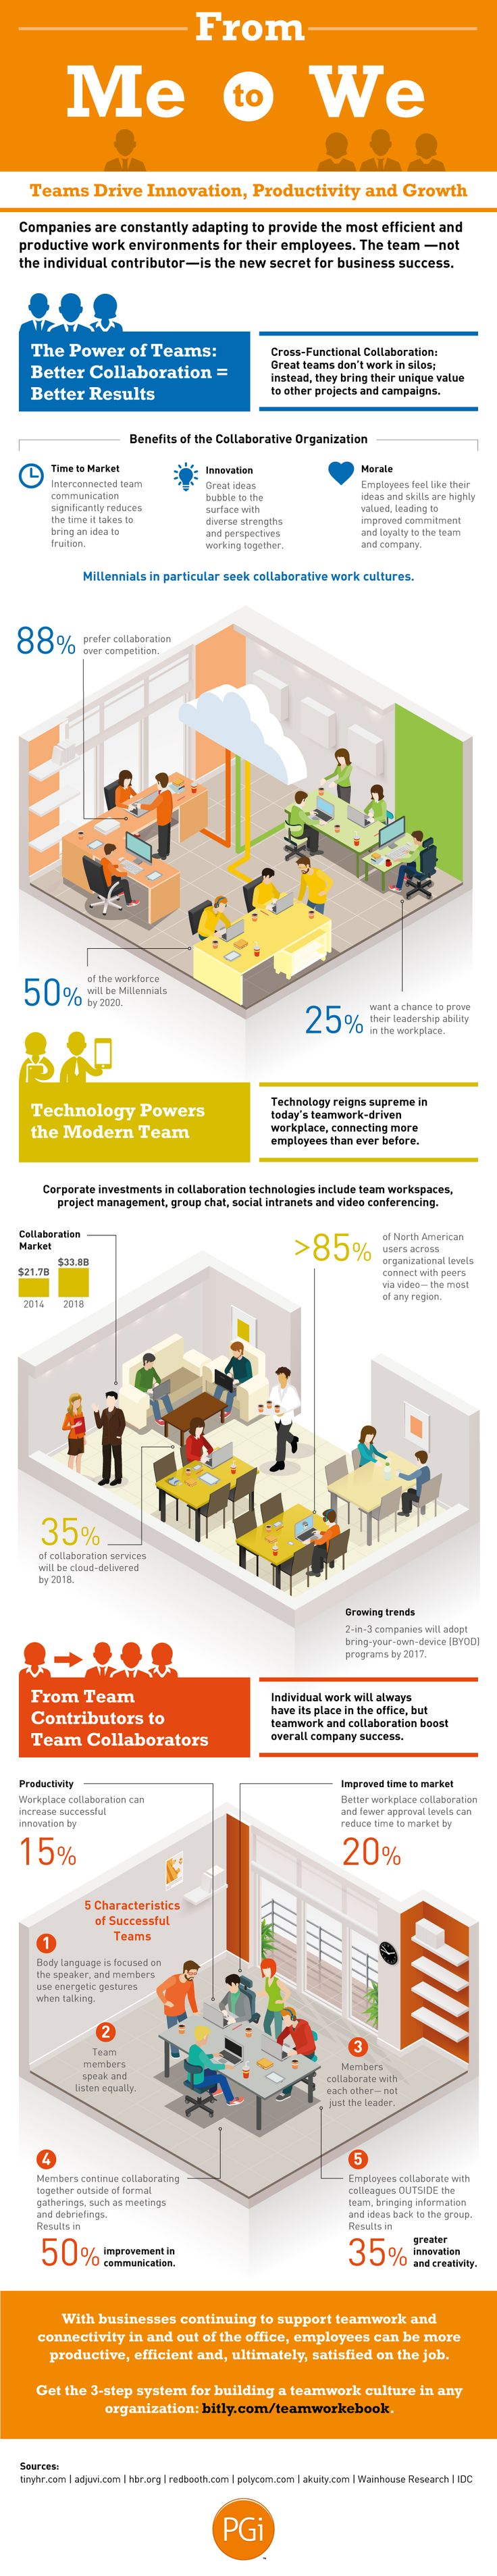 Why Workplace Collaboration Is the New Secret for Business Success [Infographic], via @HubSpot